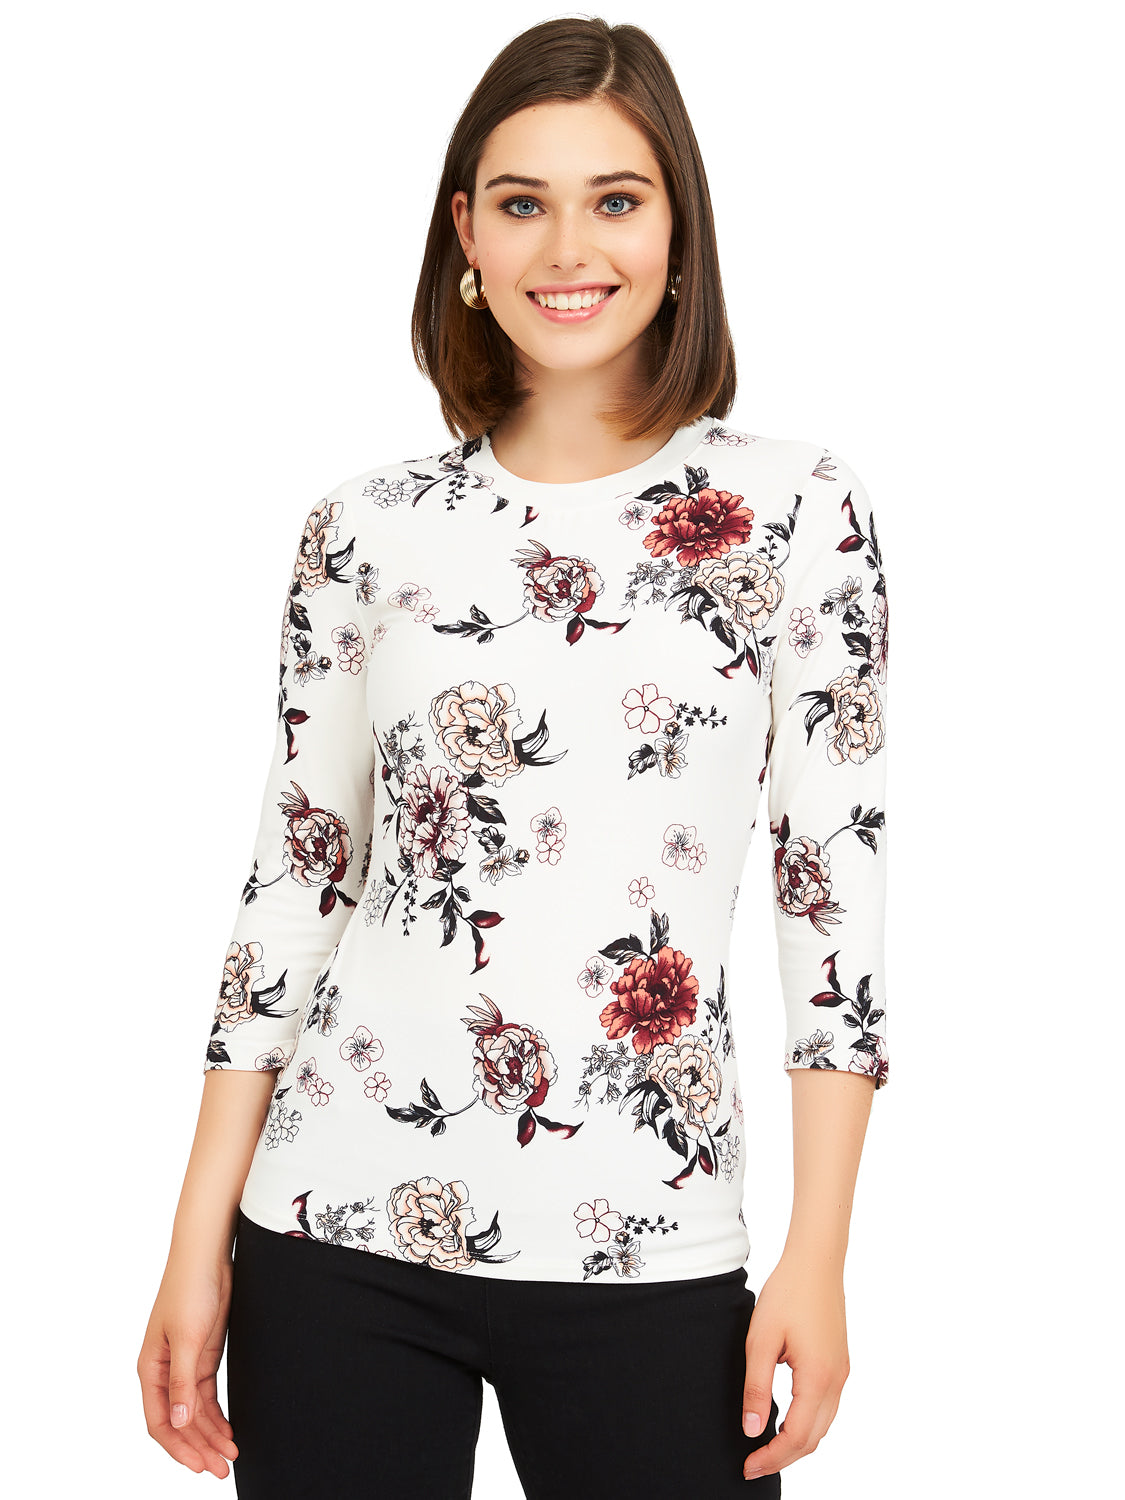 ¾ Sleeve Floral Print Crew Neck Top